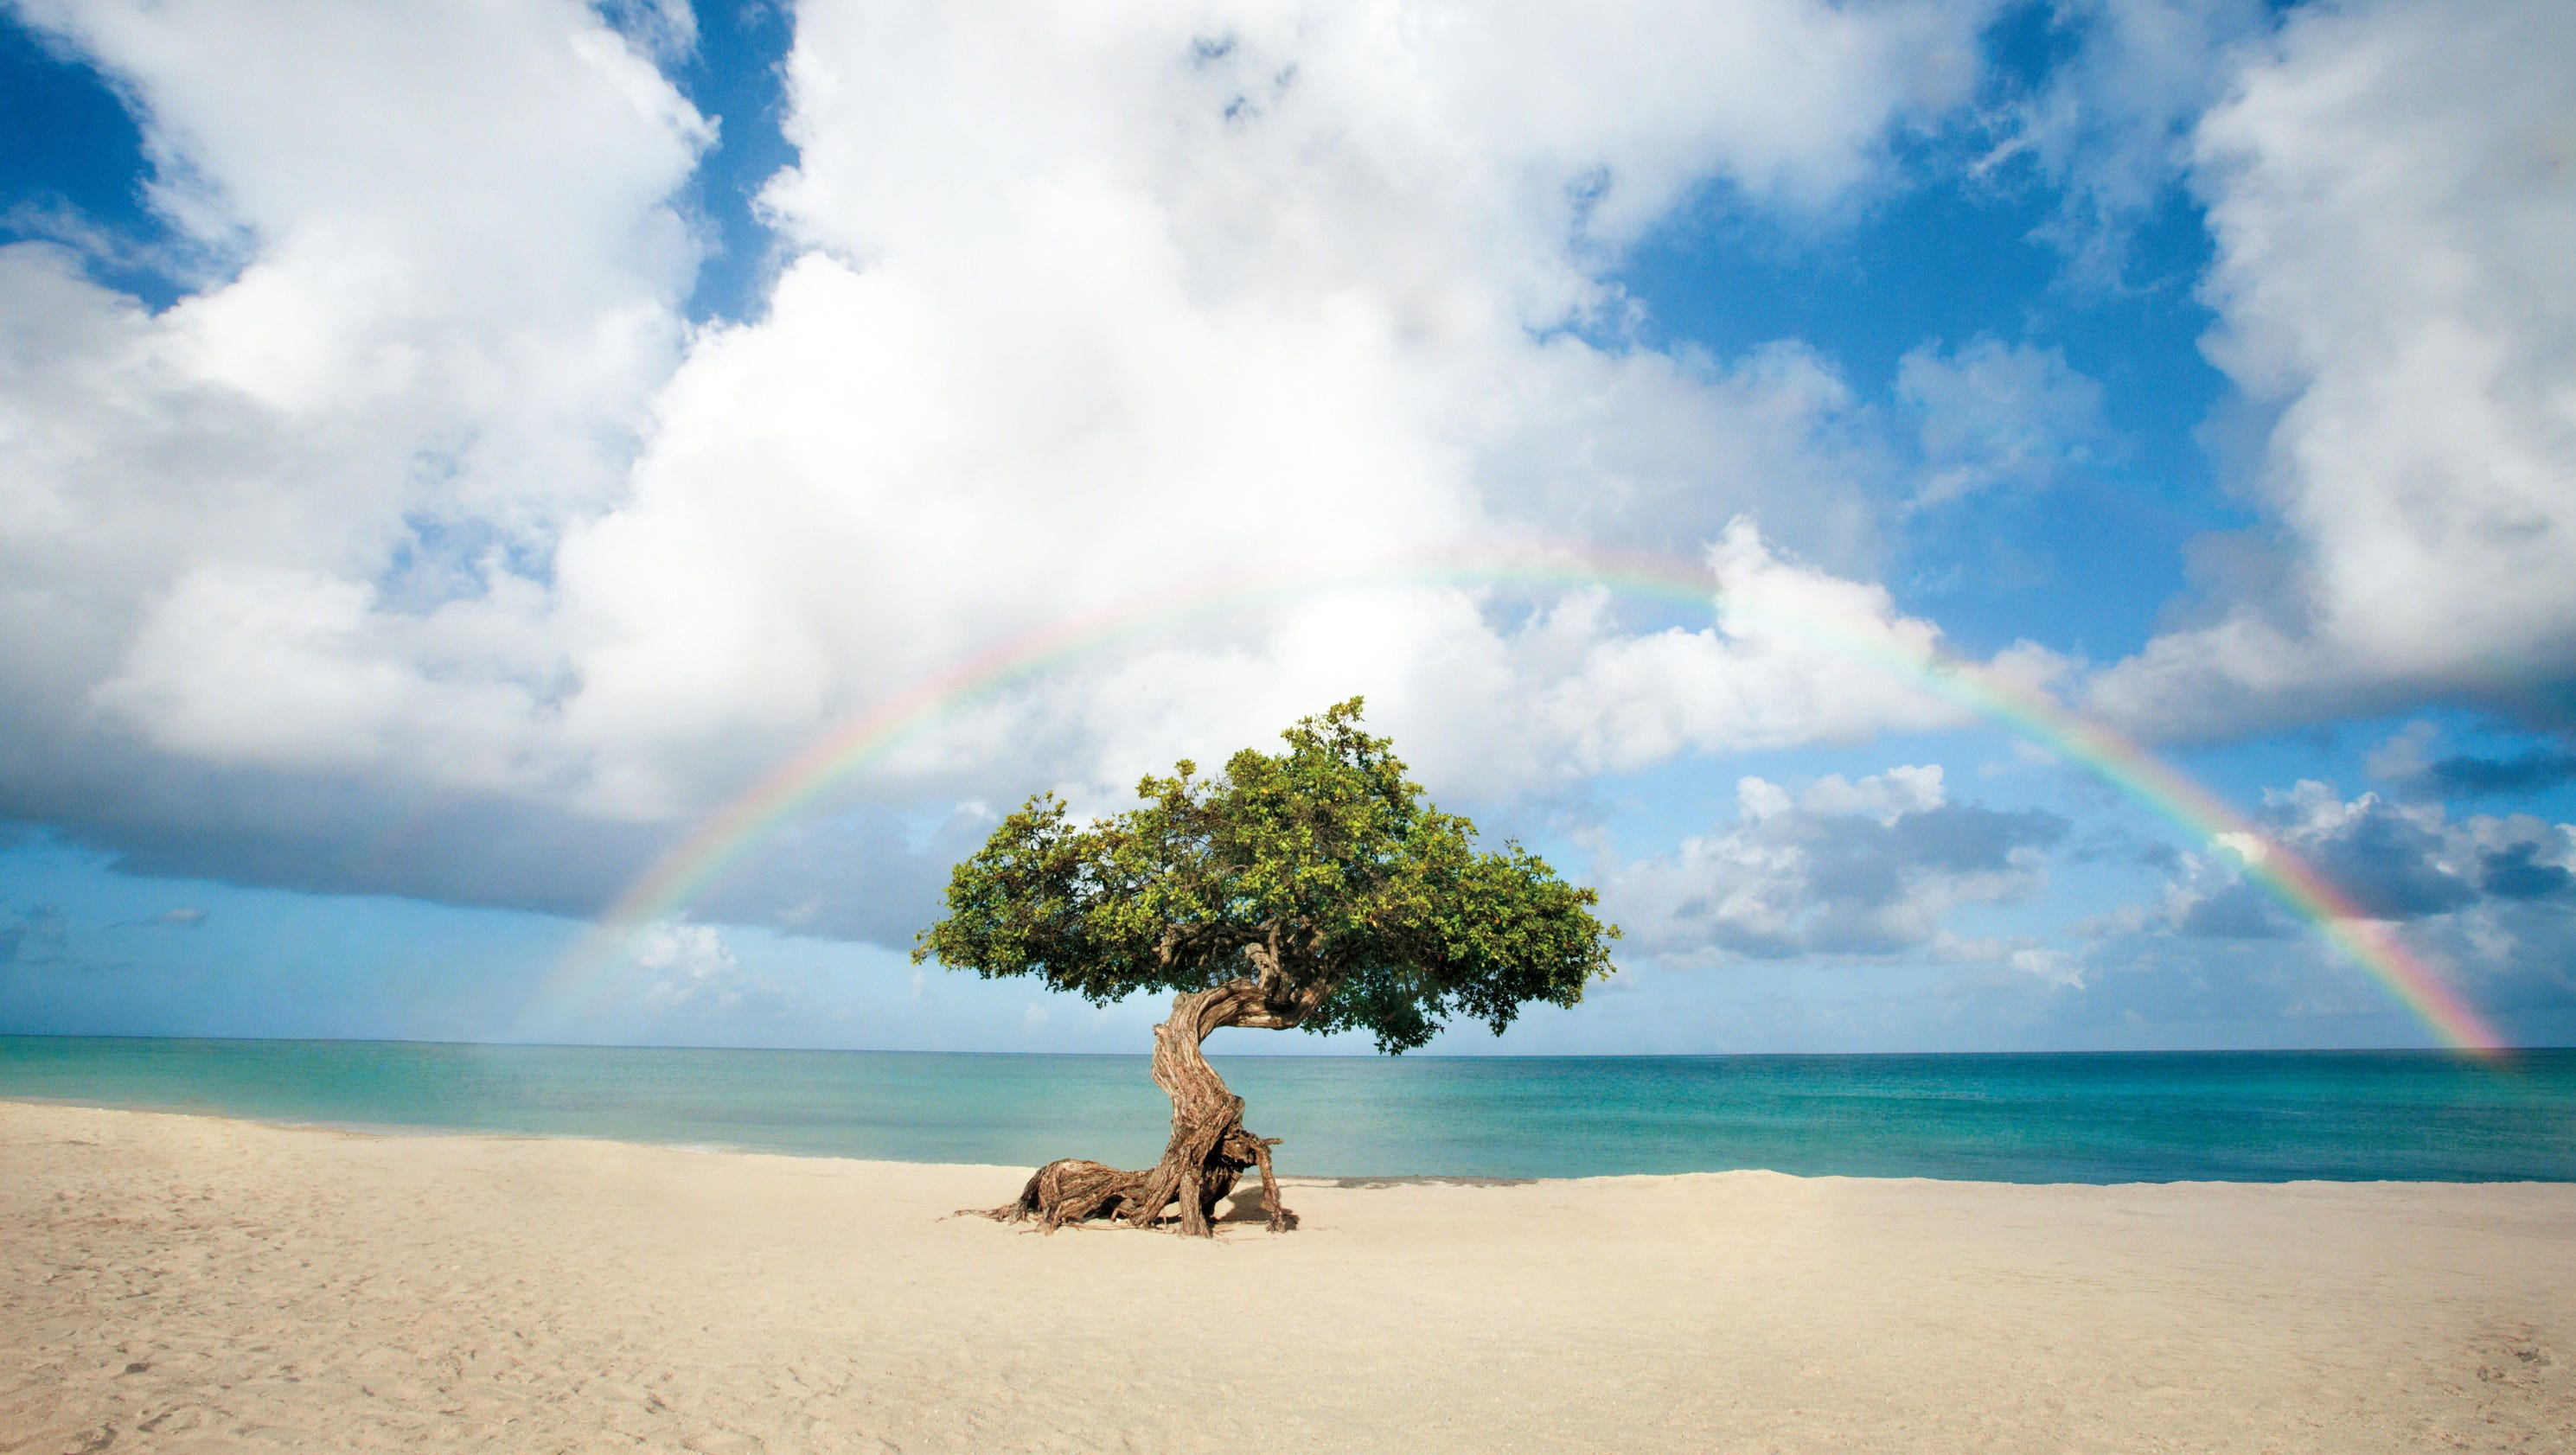 Explore The Beauty Of Caribbean: Beautiful Caribbean: Photo Tours Of The ABC Islands